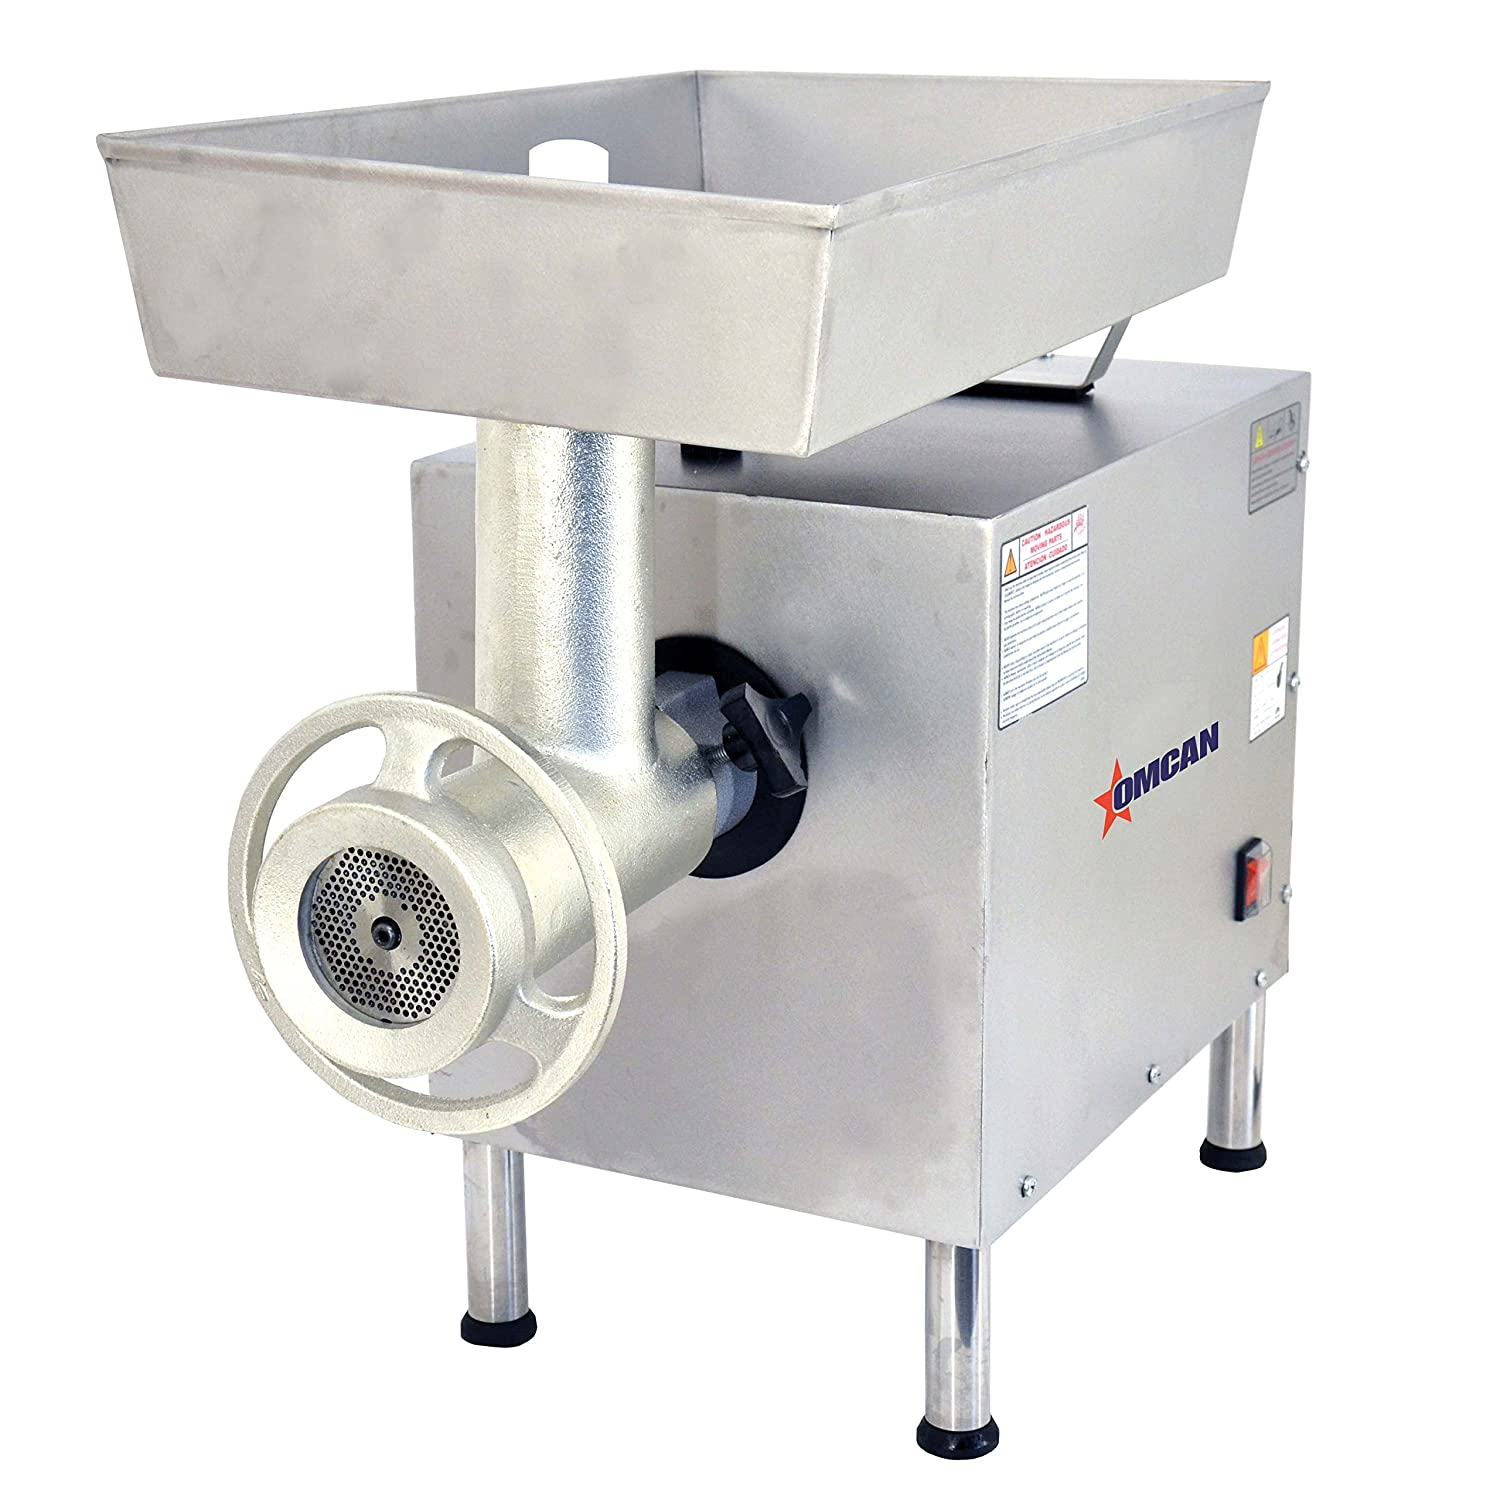 Omcan 11067 Commercial Restaurant # 22 Moderate Max Price reduction 49% OFF Electr HP Duty 2